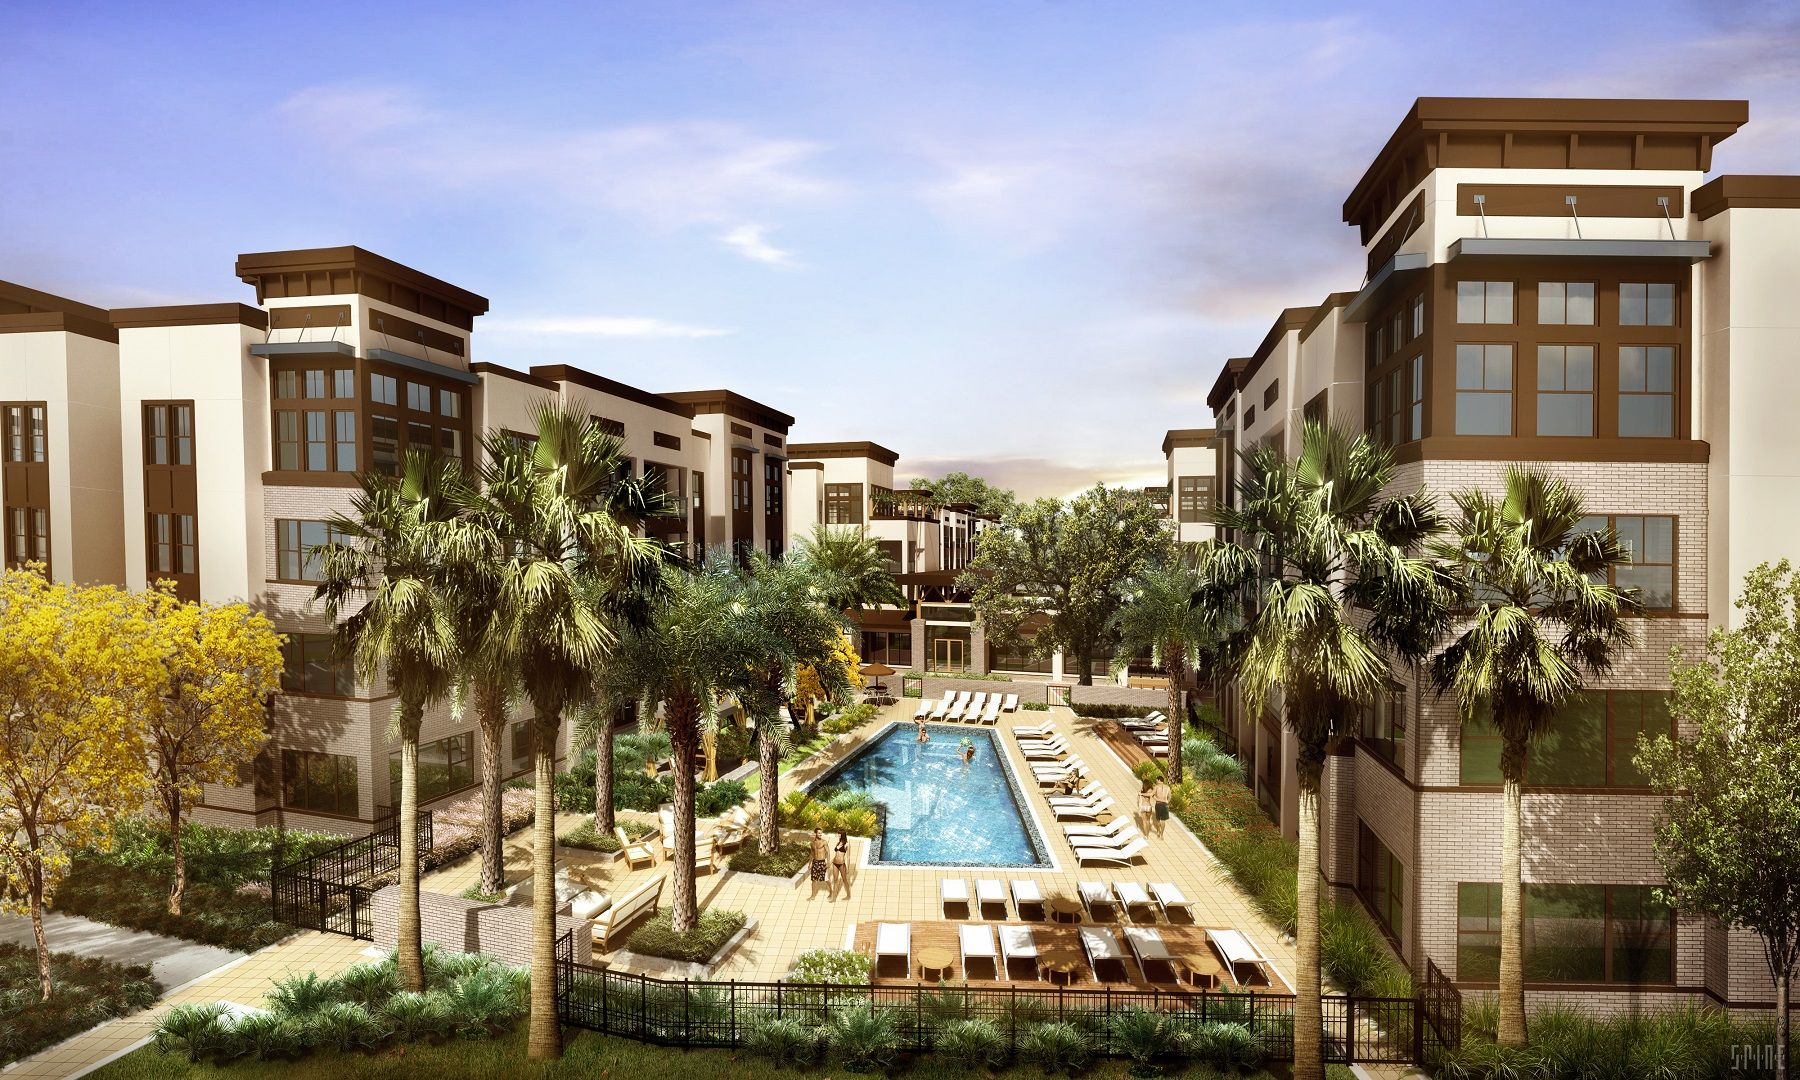 Crescent Communities Breaks Ground On Crescent Gateway Luxury Apartment Community Is First Phase Of Cresce Architecture Design Architect Apartment Communities